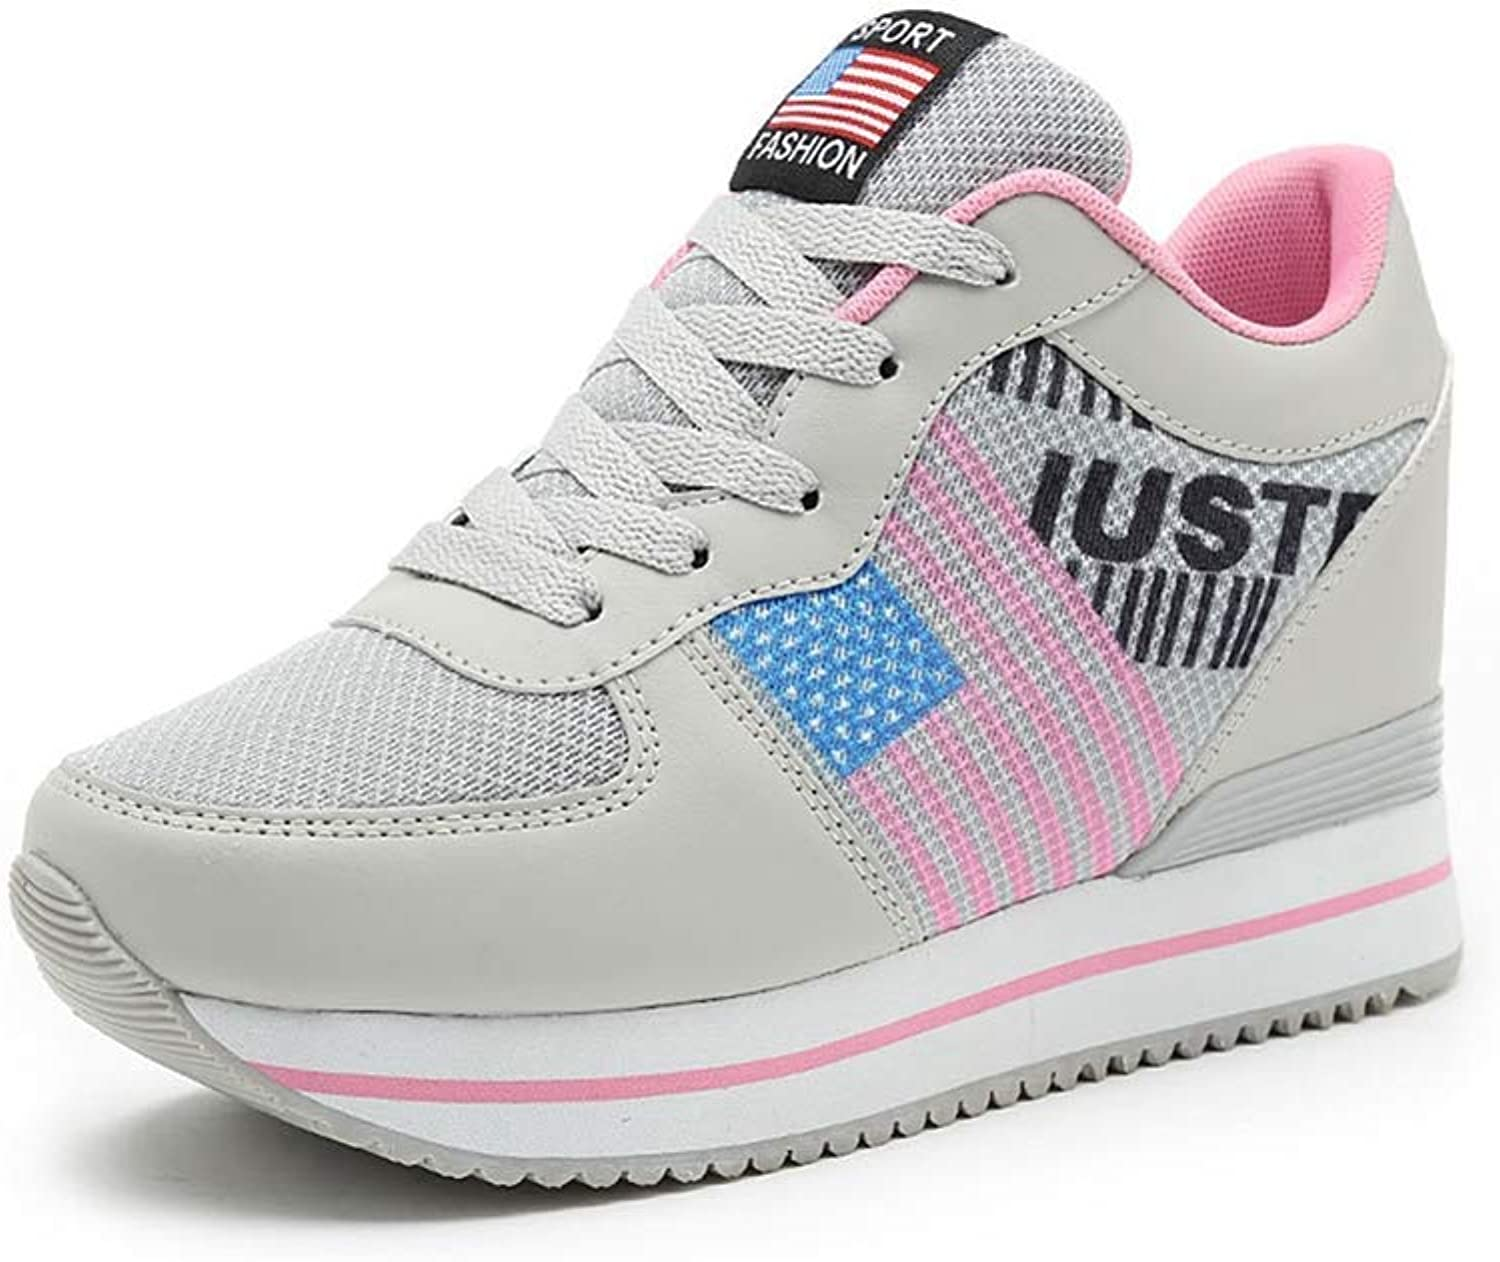 Beautiful - Fashion Womens Wedge Platform Sneakers Casual Soft Sole Mesh Breathable Lace Up Low Top Walking Sports shoes